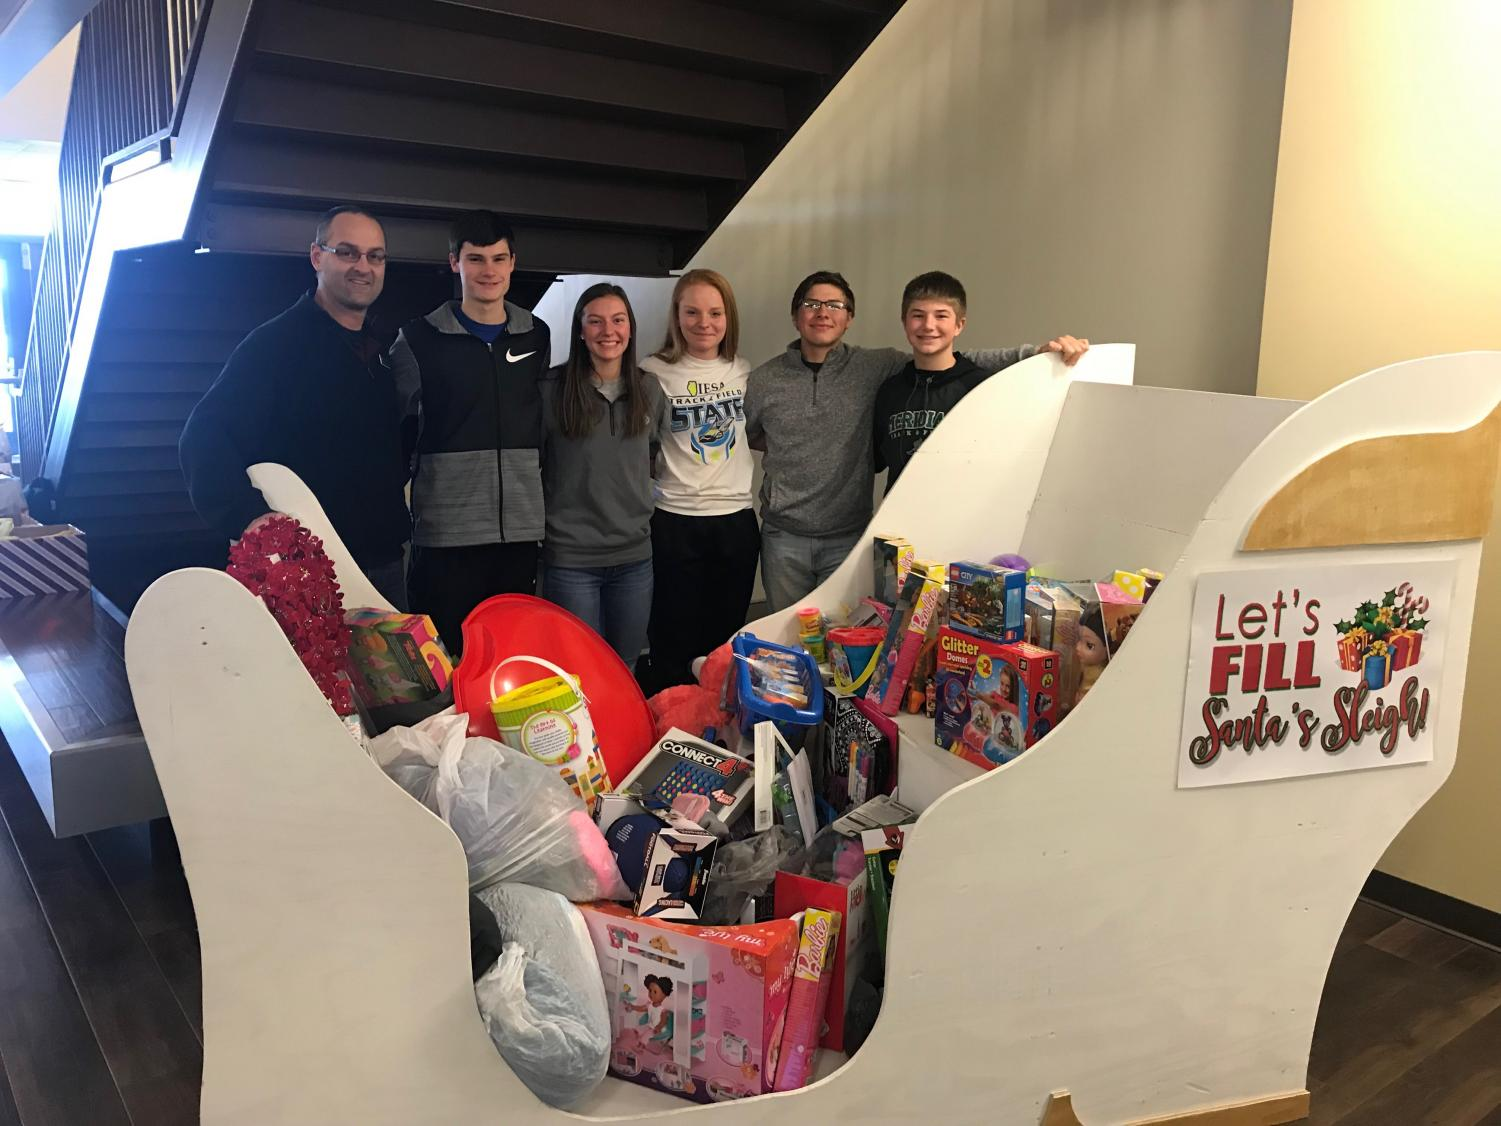 Let's fill Santa's sleigh. Kyle Karsten, Drew Hurelbrink, Erin Fasick, Abbi Hackert, Cristian Scott, and Lucas Clapp carried out the collected toys from the school. The toys were then taken to the Salvation Army gymnasium on December 8, 2018.